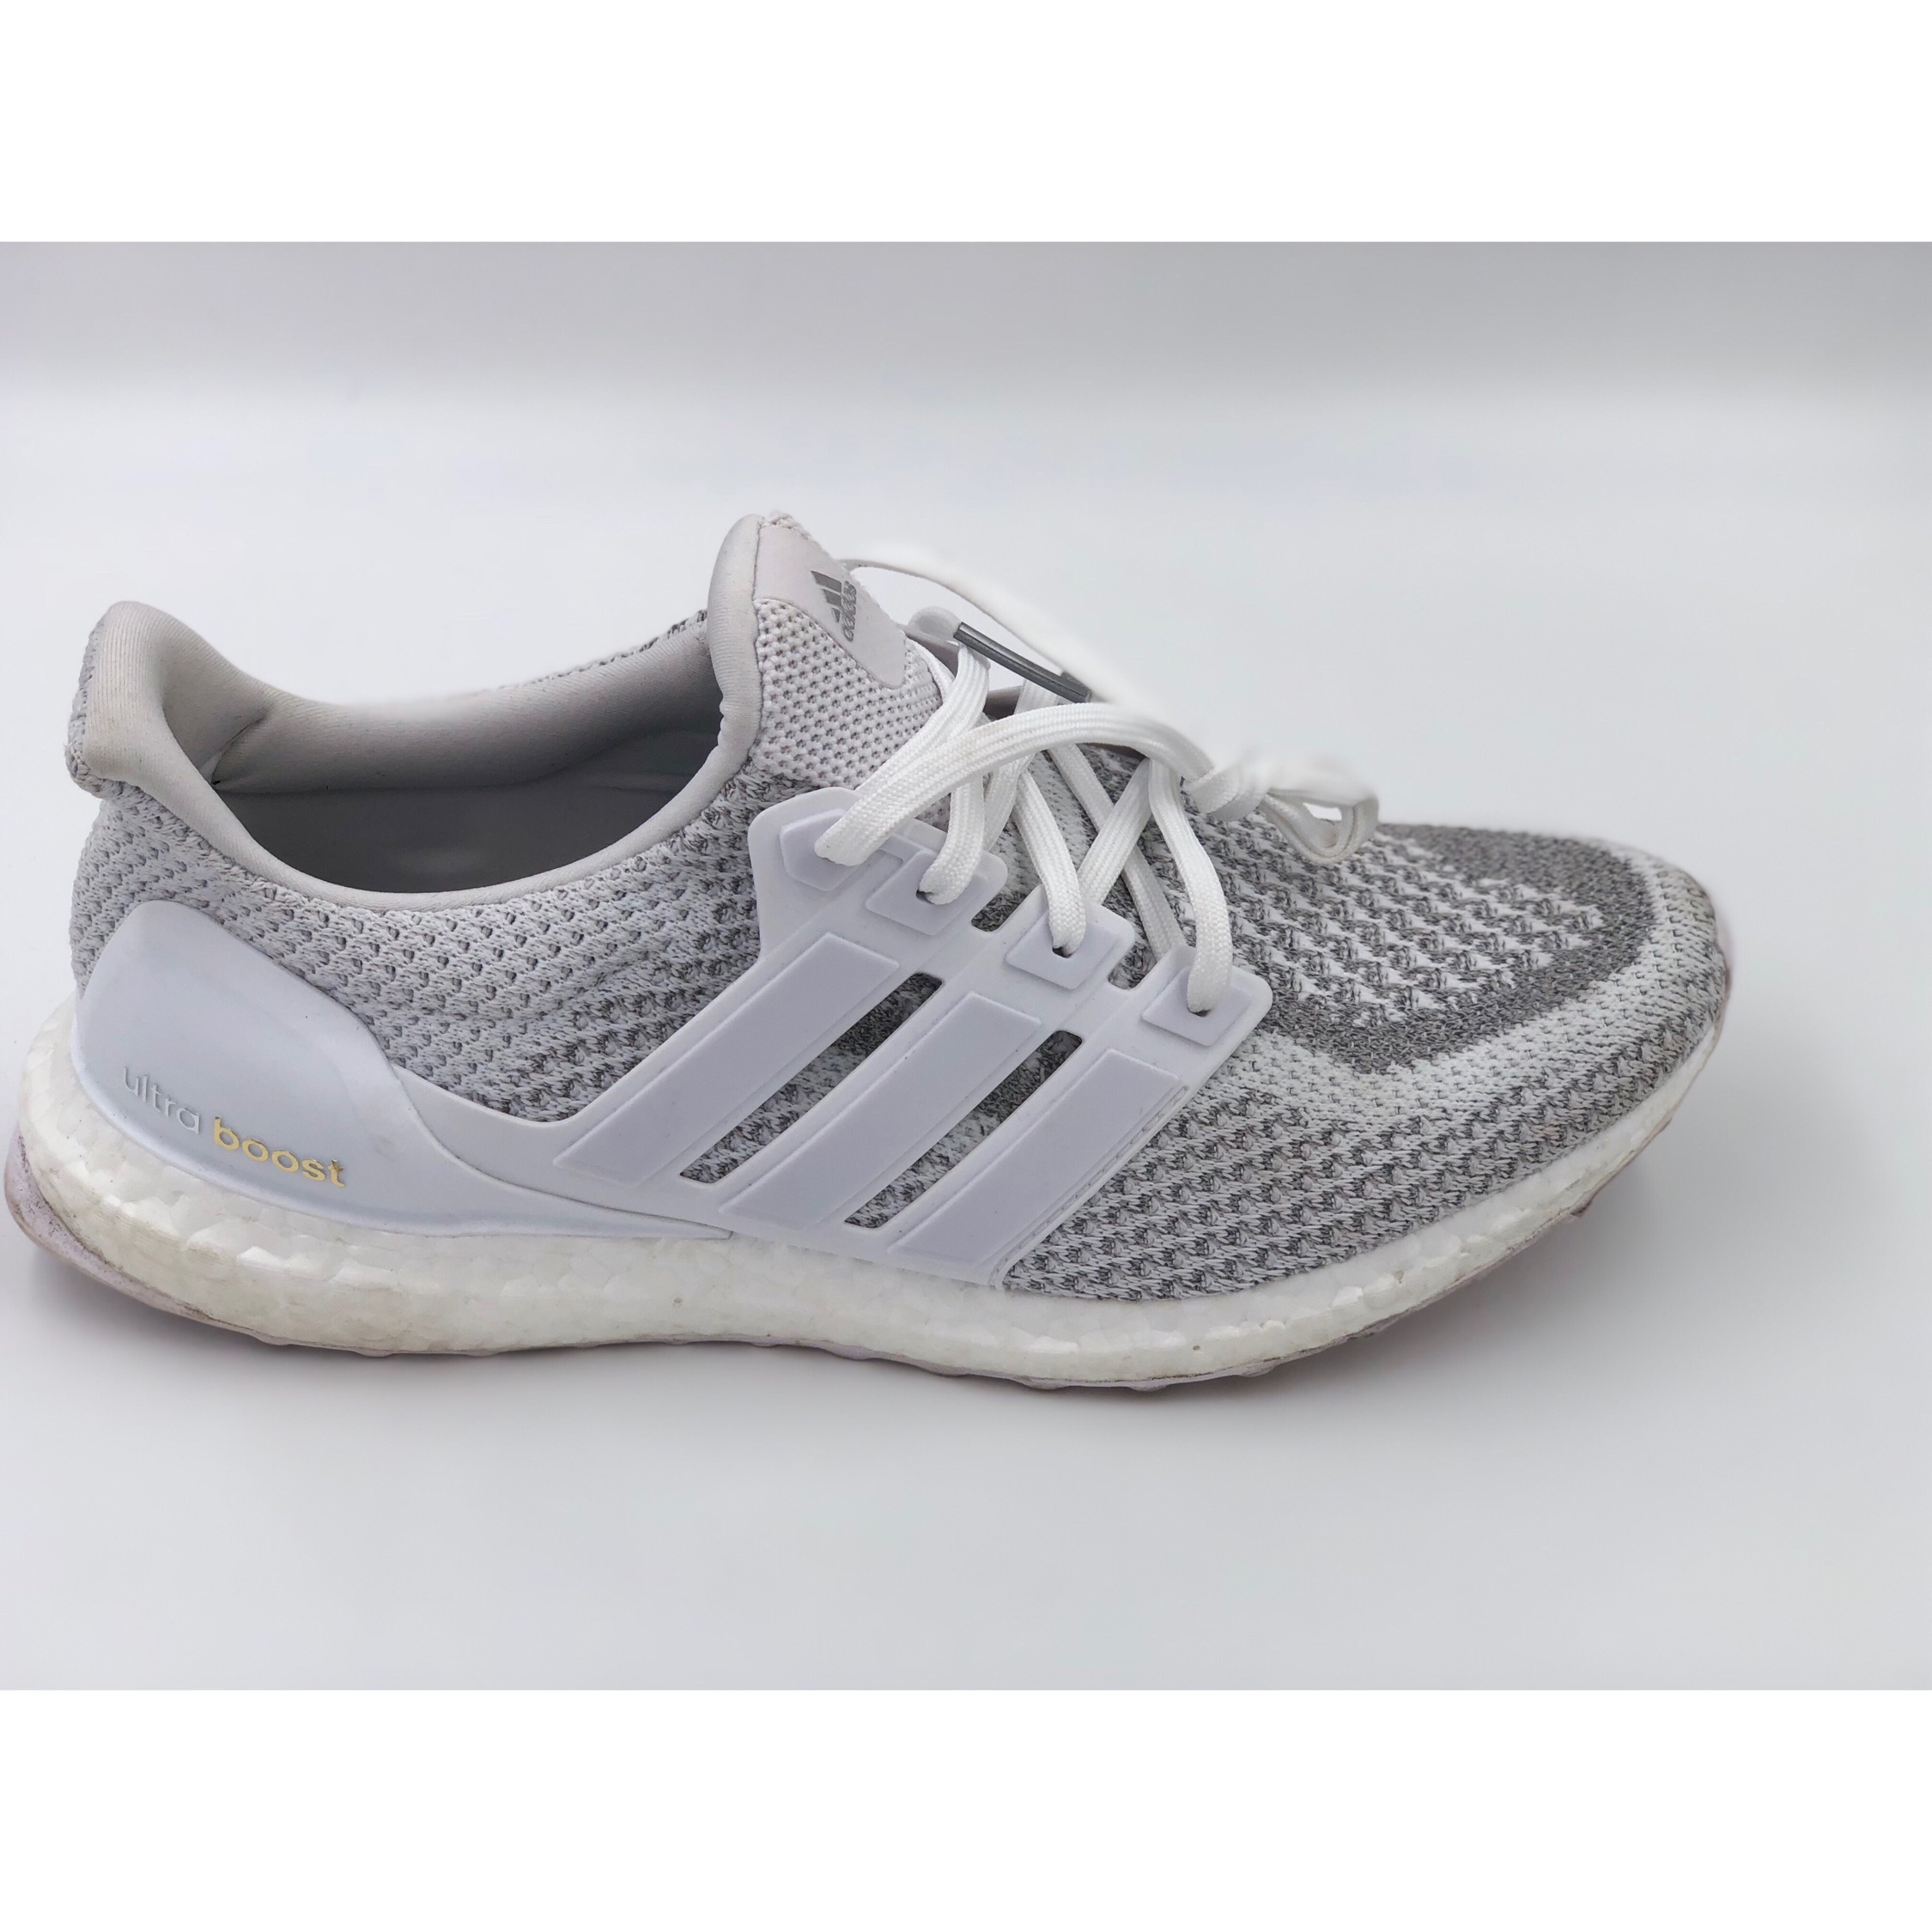 best sneakers fb8bd 8d3d7 Adidas Ultra Boost 2.0 White Reflective